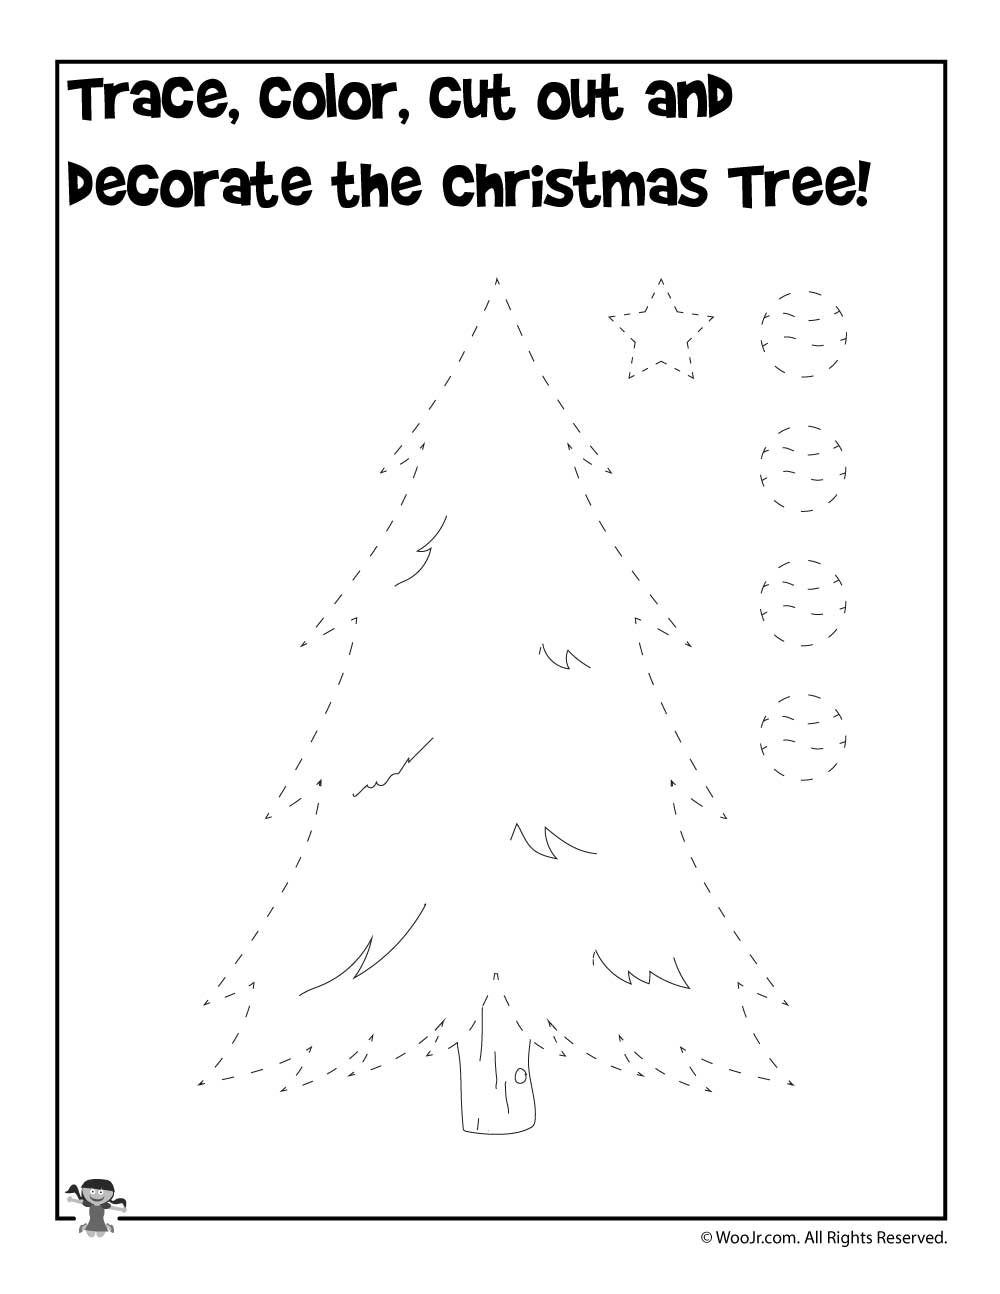 Decorate The Christmas Tree Printable Activity Woo Jr